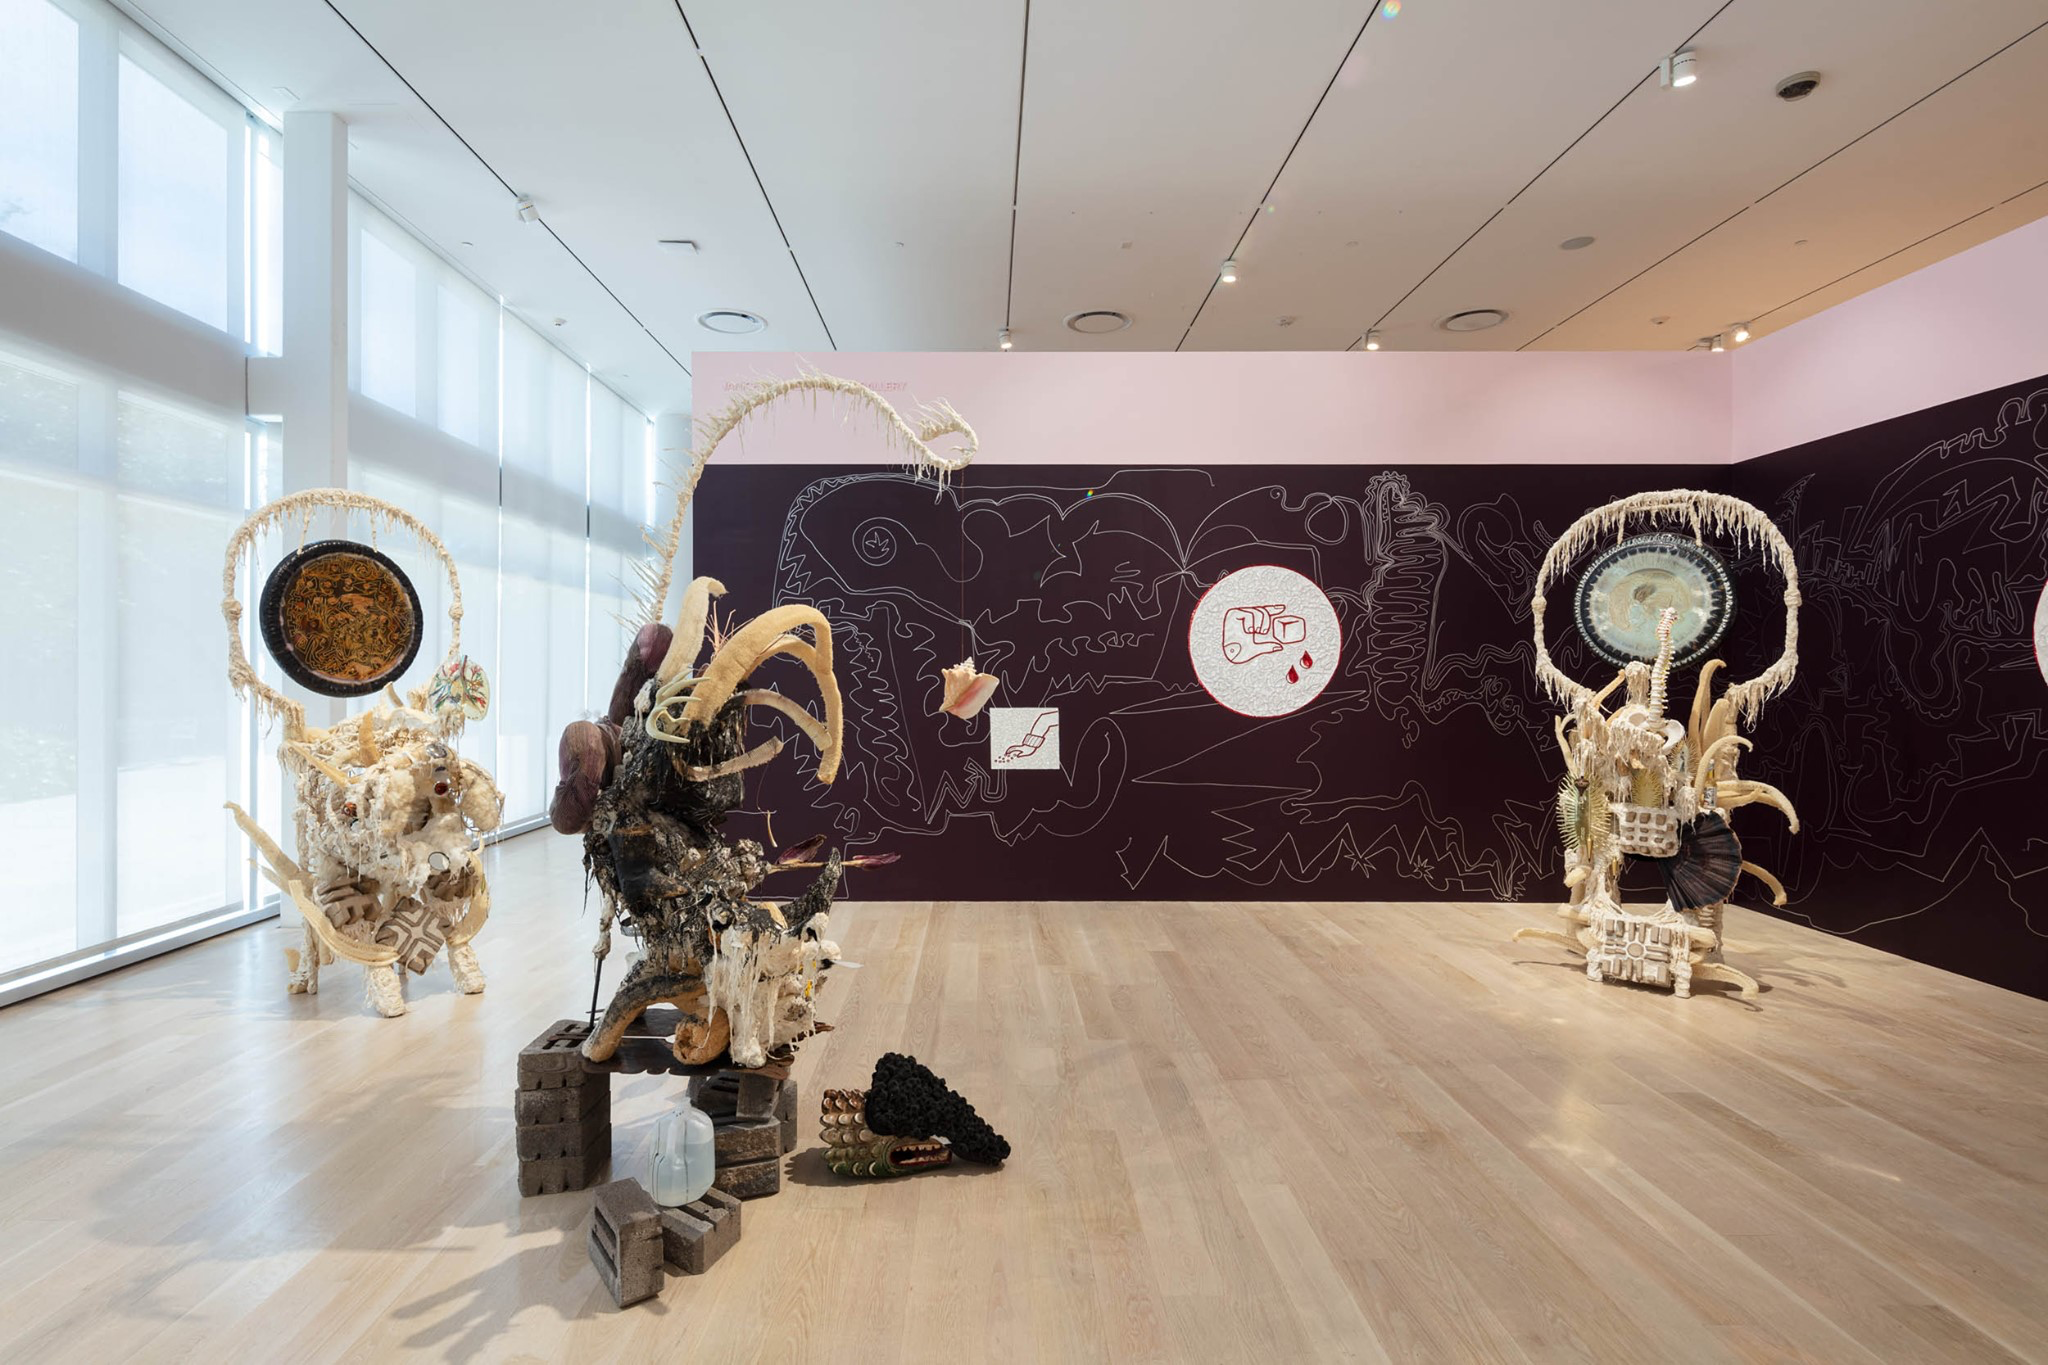 7 Art Galleries You Shouldn't Miss in Miami